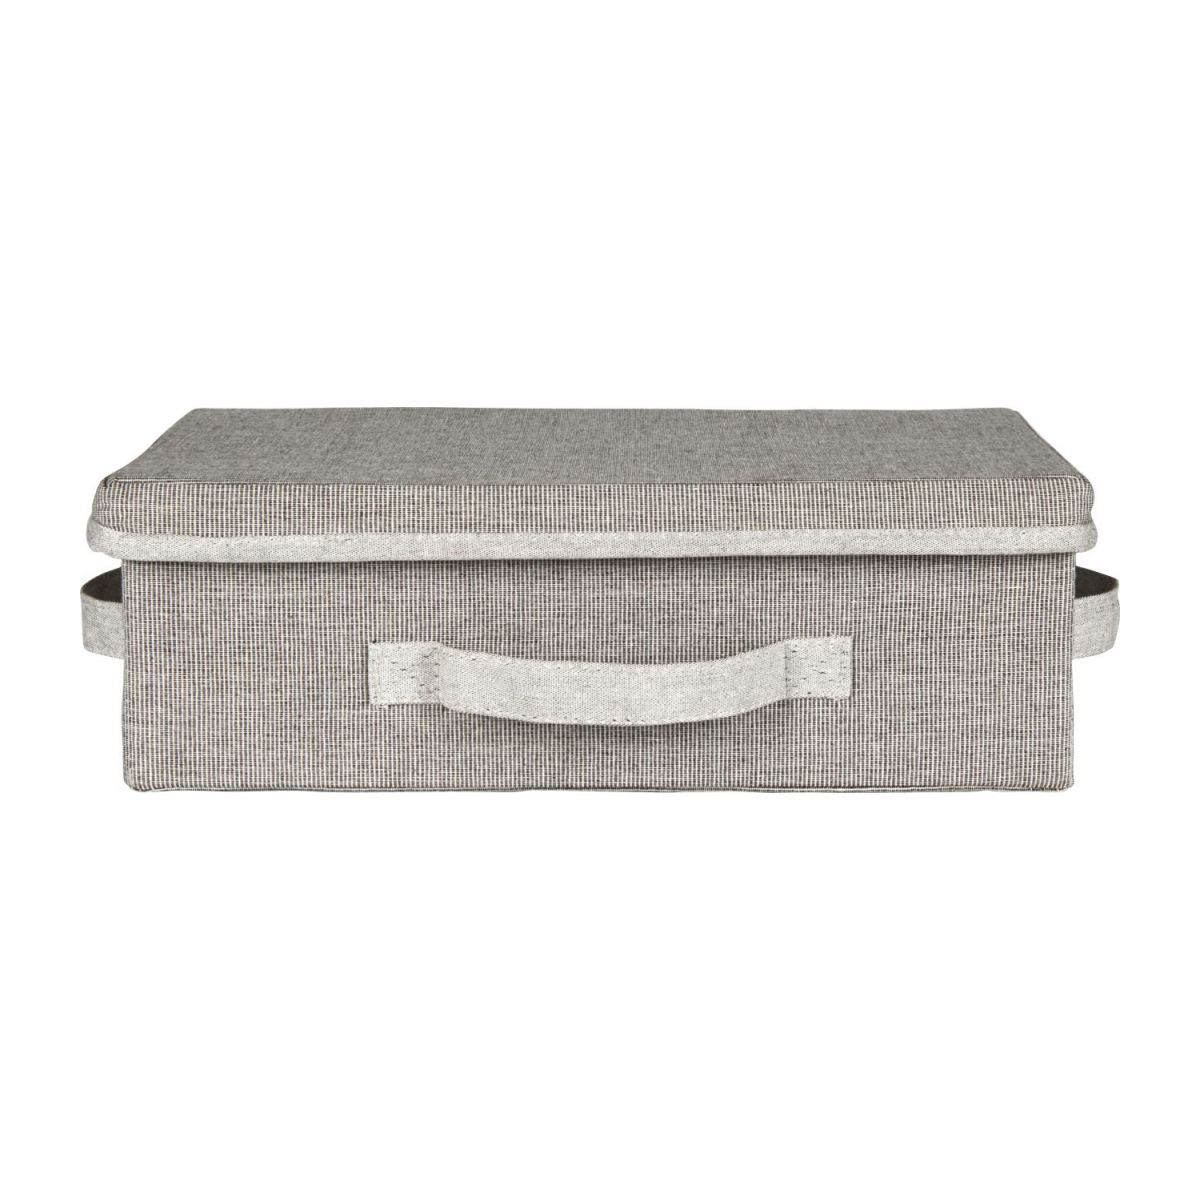 Small Storage basket, grey fabric and bamboo n°2